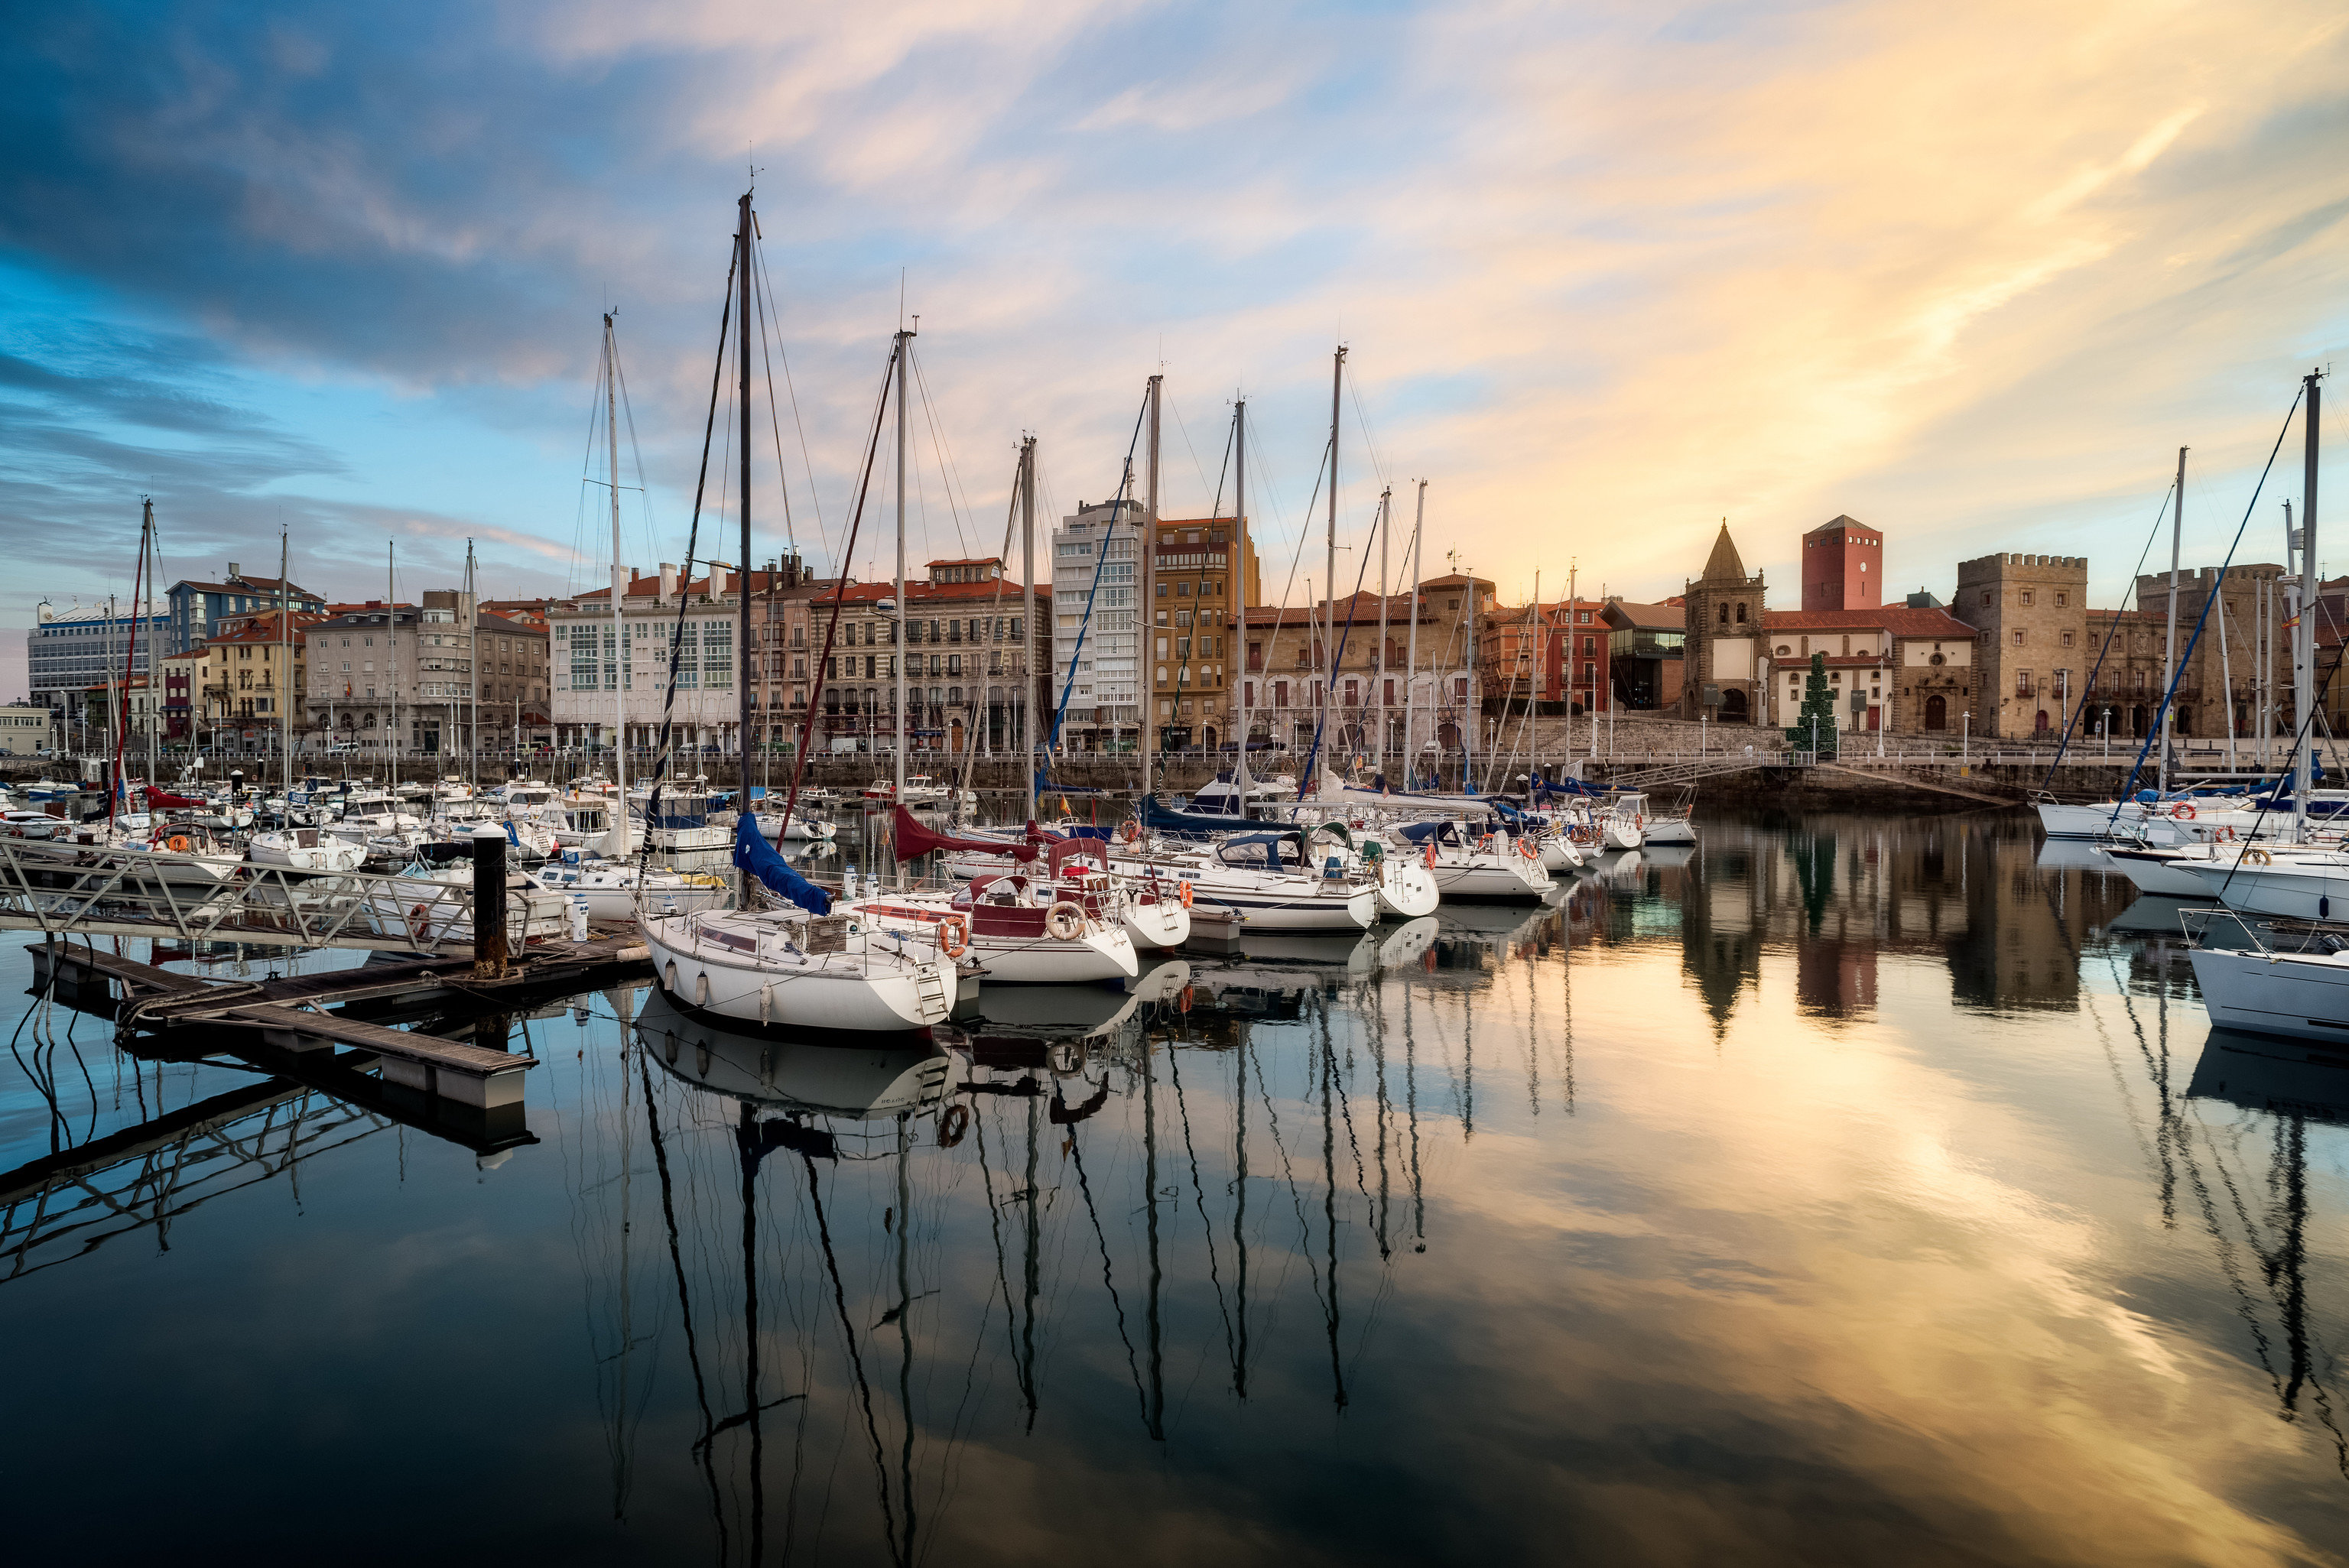 Austria England europe France Germany Italy Outdoors + Adventure Portugal Spain Trip Ideas marina reflection Harbor water sky body of water waterway dock cityscape urban area Boat City port evening morning horizon dusk watercraft calm channel skyline Sea cloud Downtown Sunset